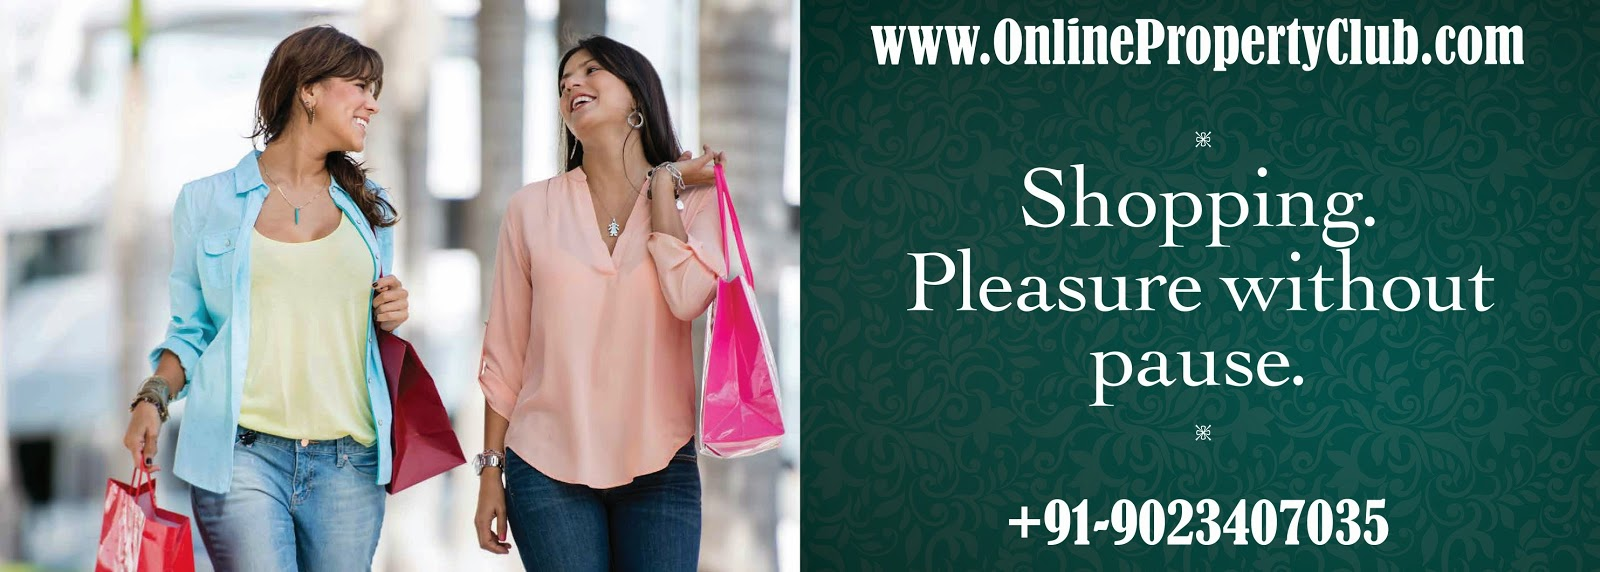 DLF Microshops (Booths) Mullanpur New-Chandigarh, DLF Hyde-Park, Prime Location, Best Deals: 9023407035